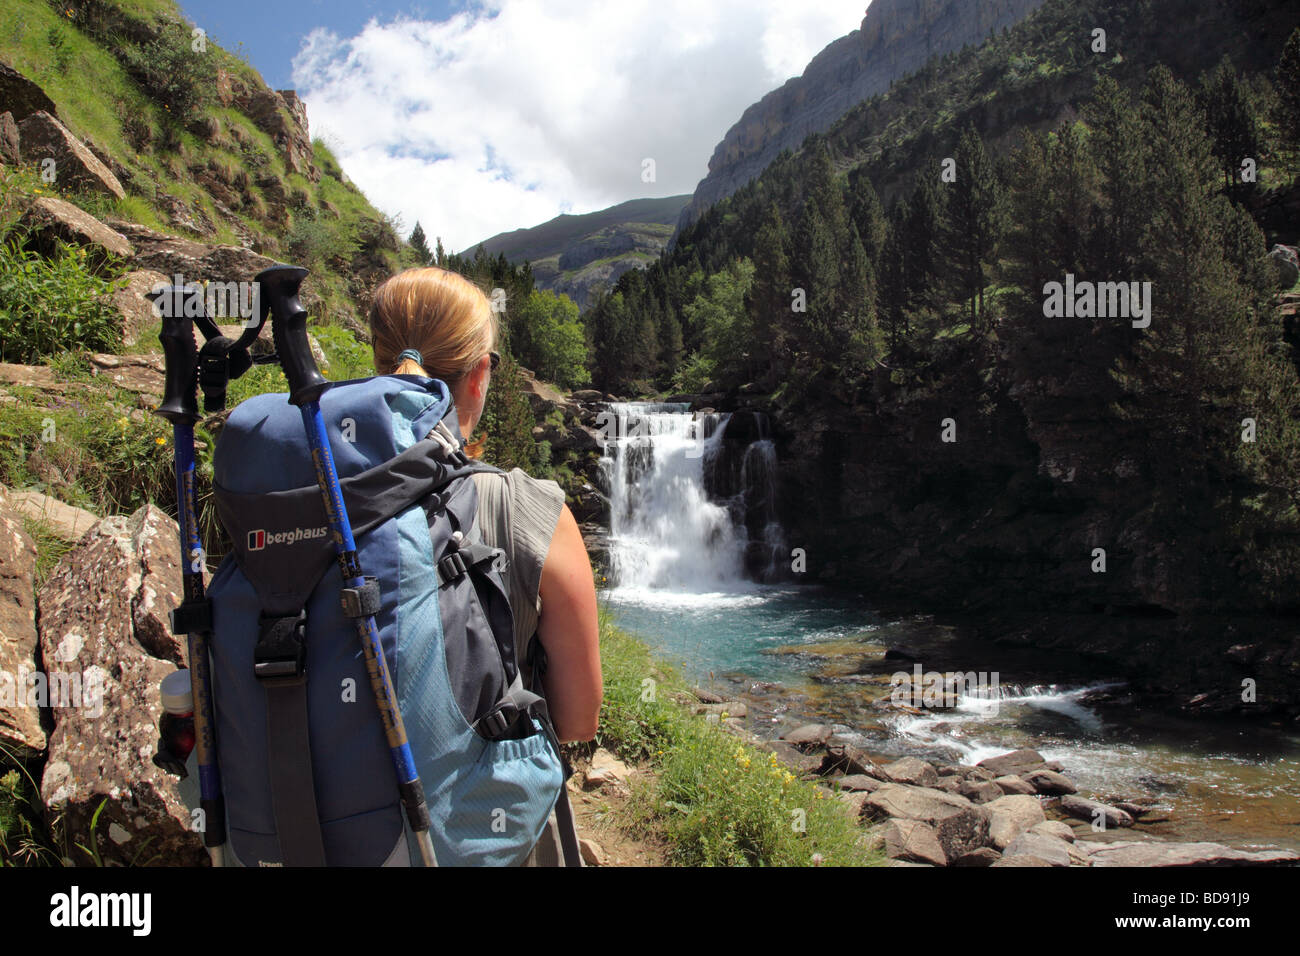 Female Hill Walker on the GR11 Footpath Enjoying the View of a Cascade on the Rio Arazas in the Ordesa Canyon Pyrenees - Stock Image